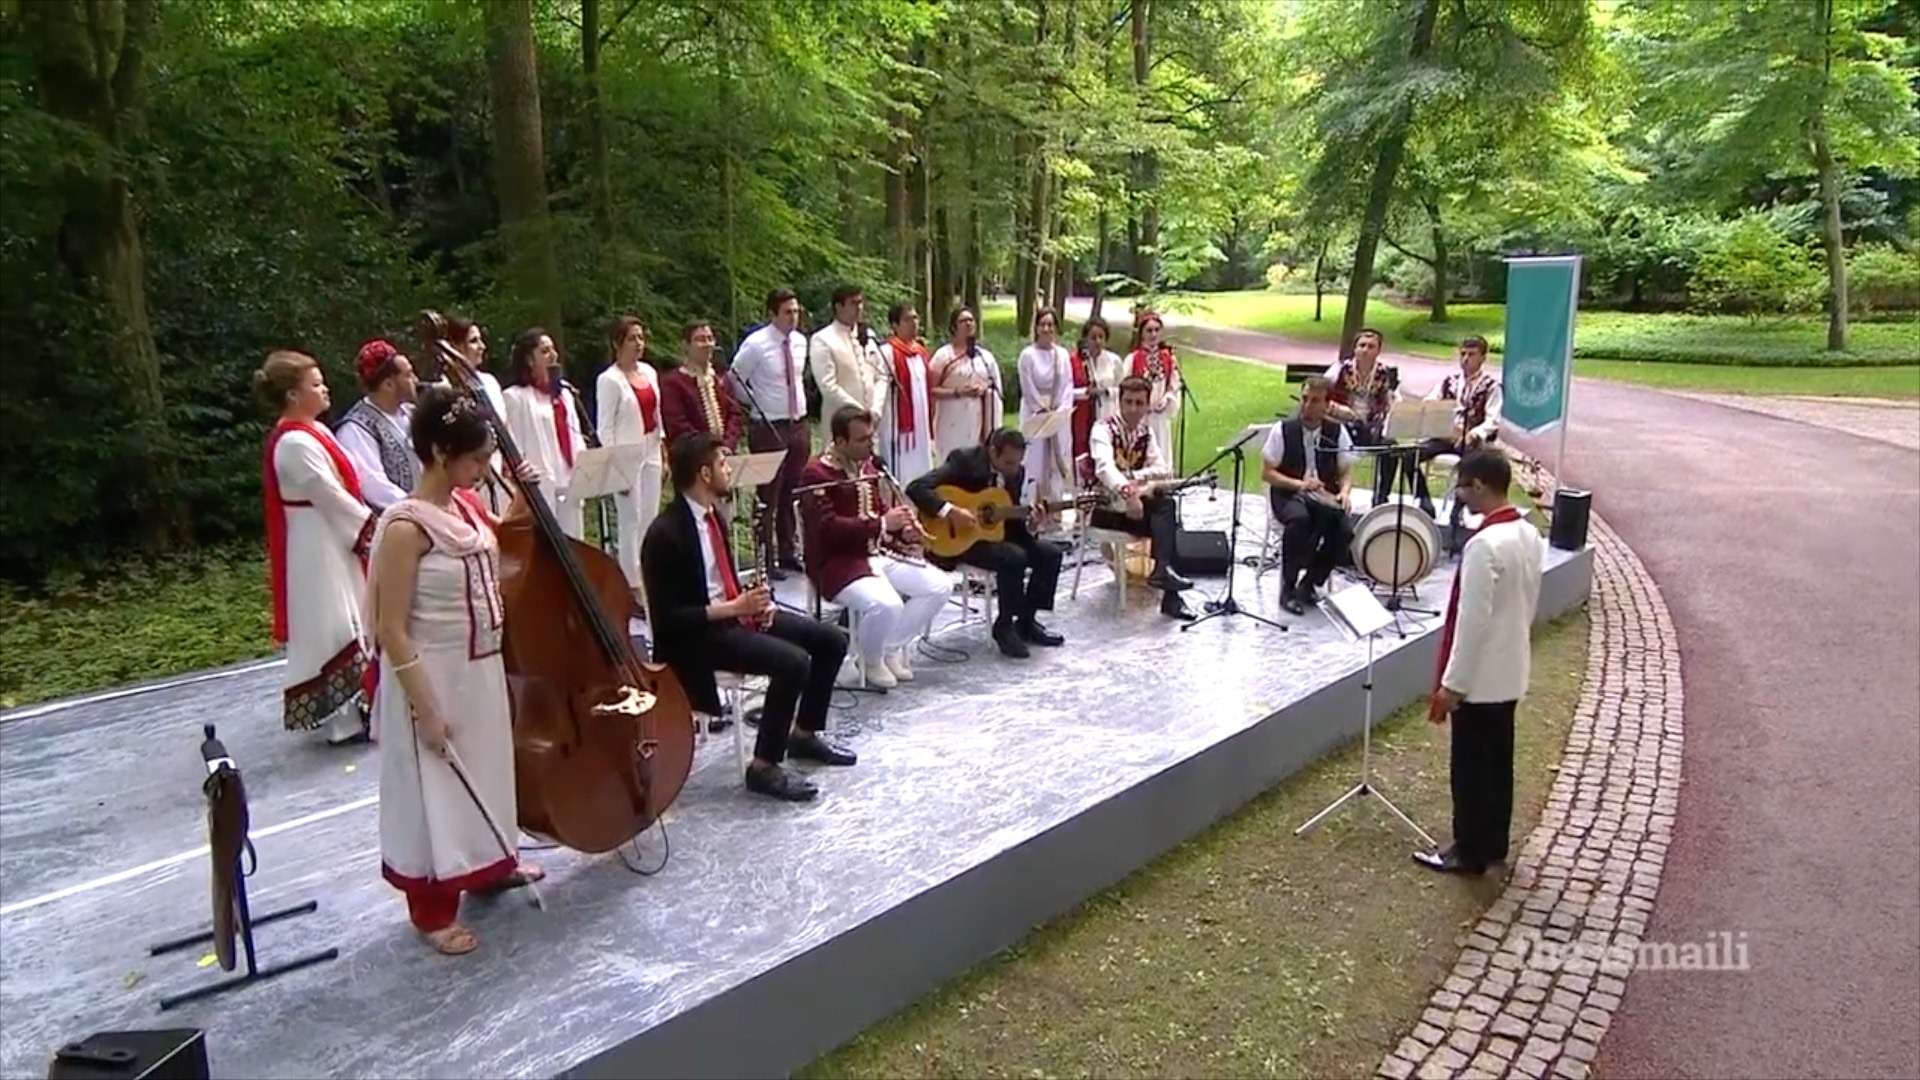 Musical Ensemble at the Homage Ceremony, Aiglemont, France, July 11, 2017